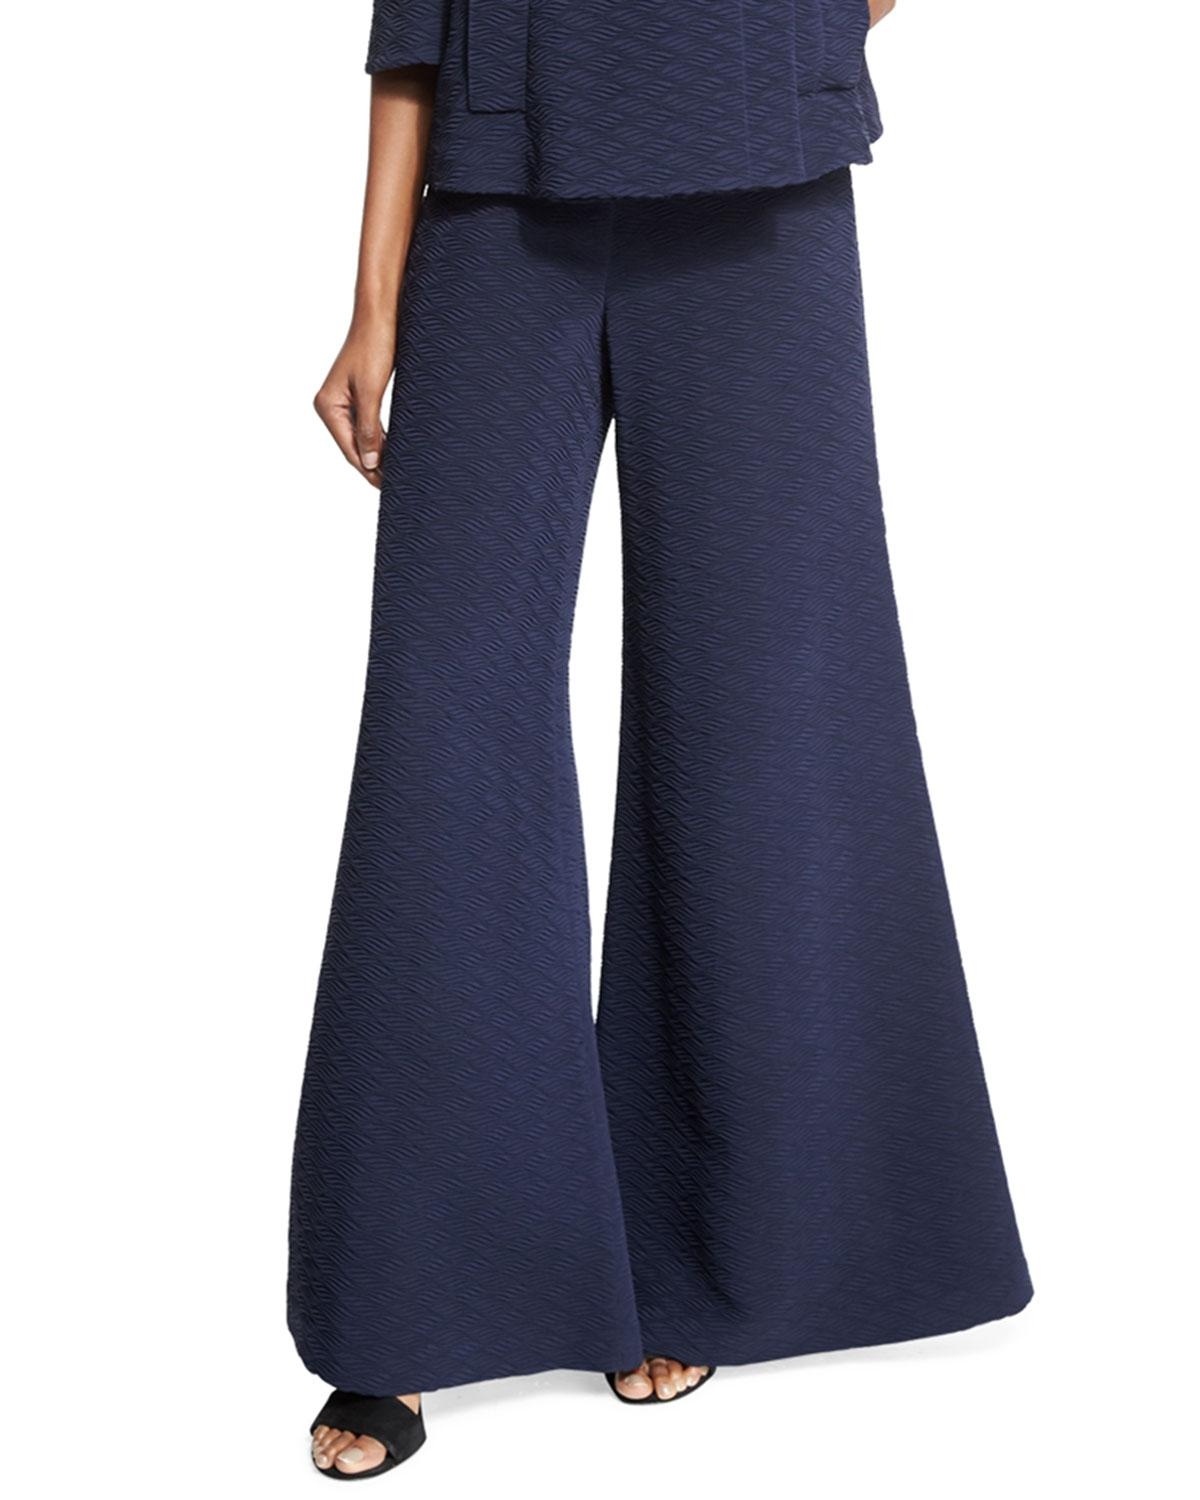 Flared or Wide Pants By Anna Bey January 15, 2 Comments. Share Tweet Google+ Pinterest LinkedIn Tumblr Email + My love for flared or wide trousers goes back all the way to when I was a teenager and wore suit pants to school. They were wide or flared and I .